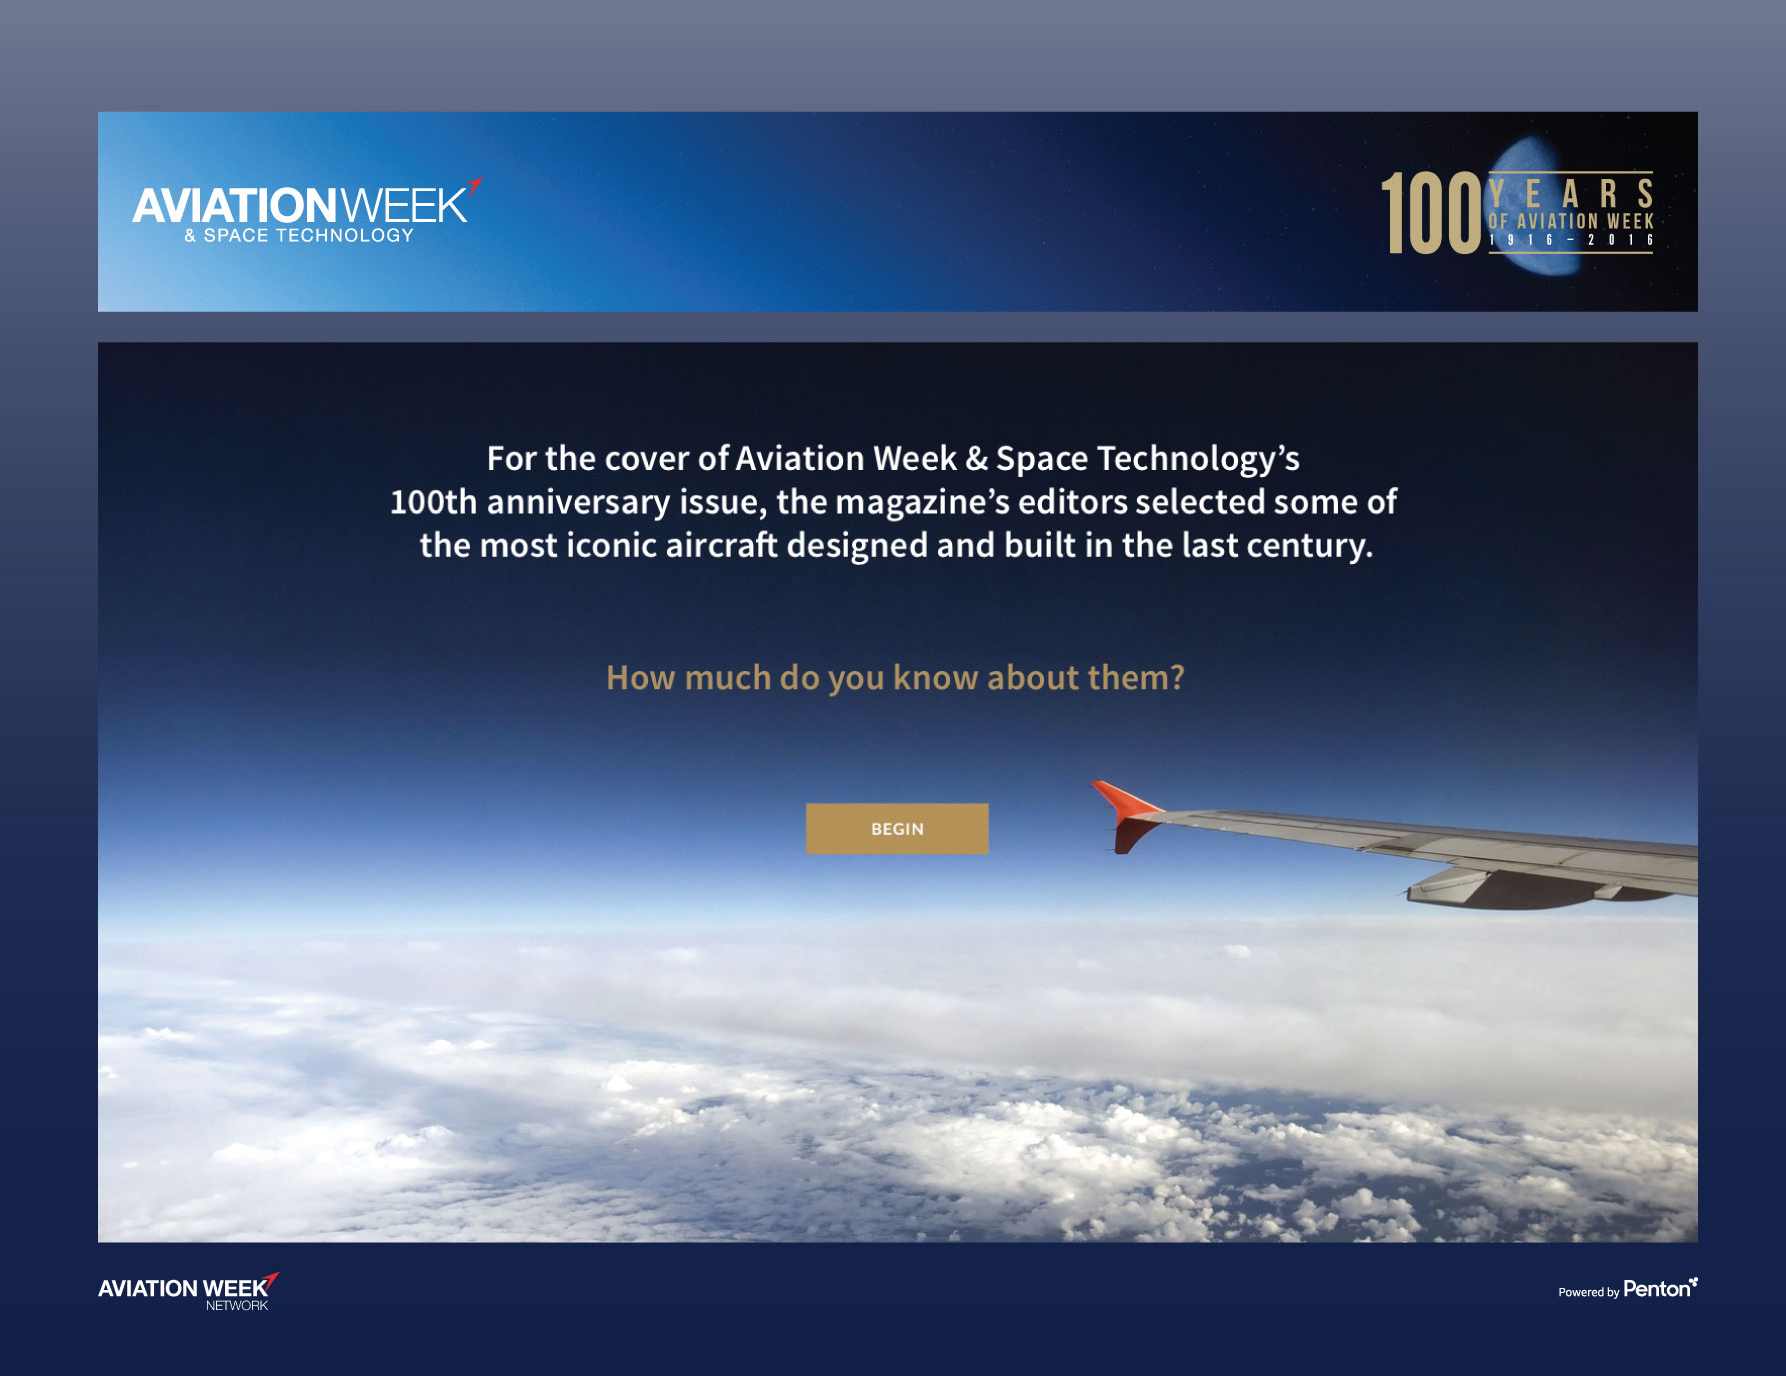 Aviation Week Boeing interactive kiosk design